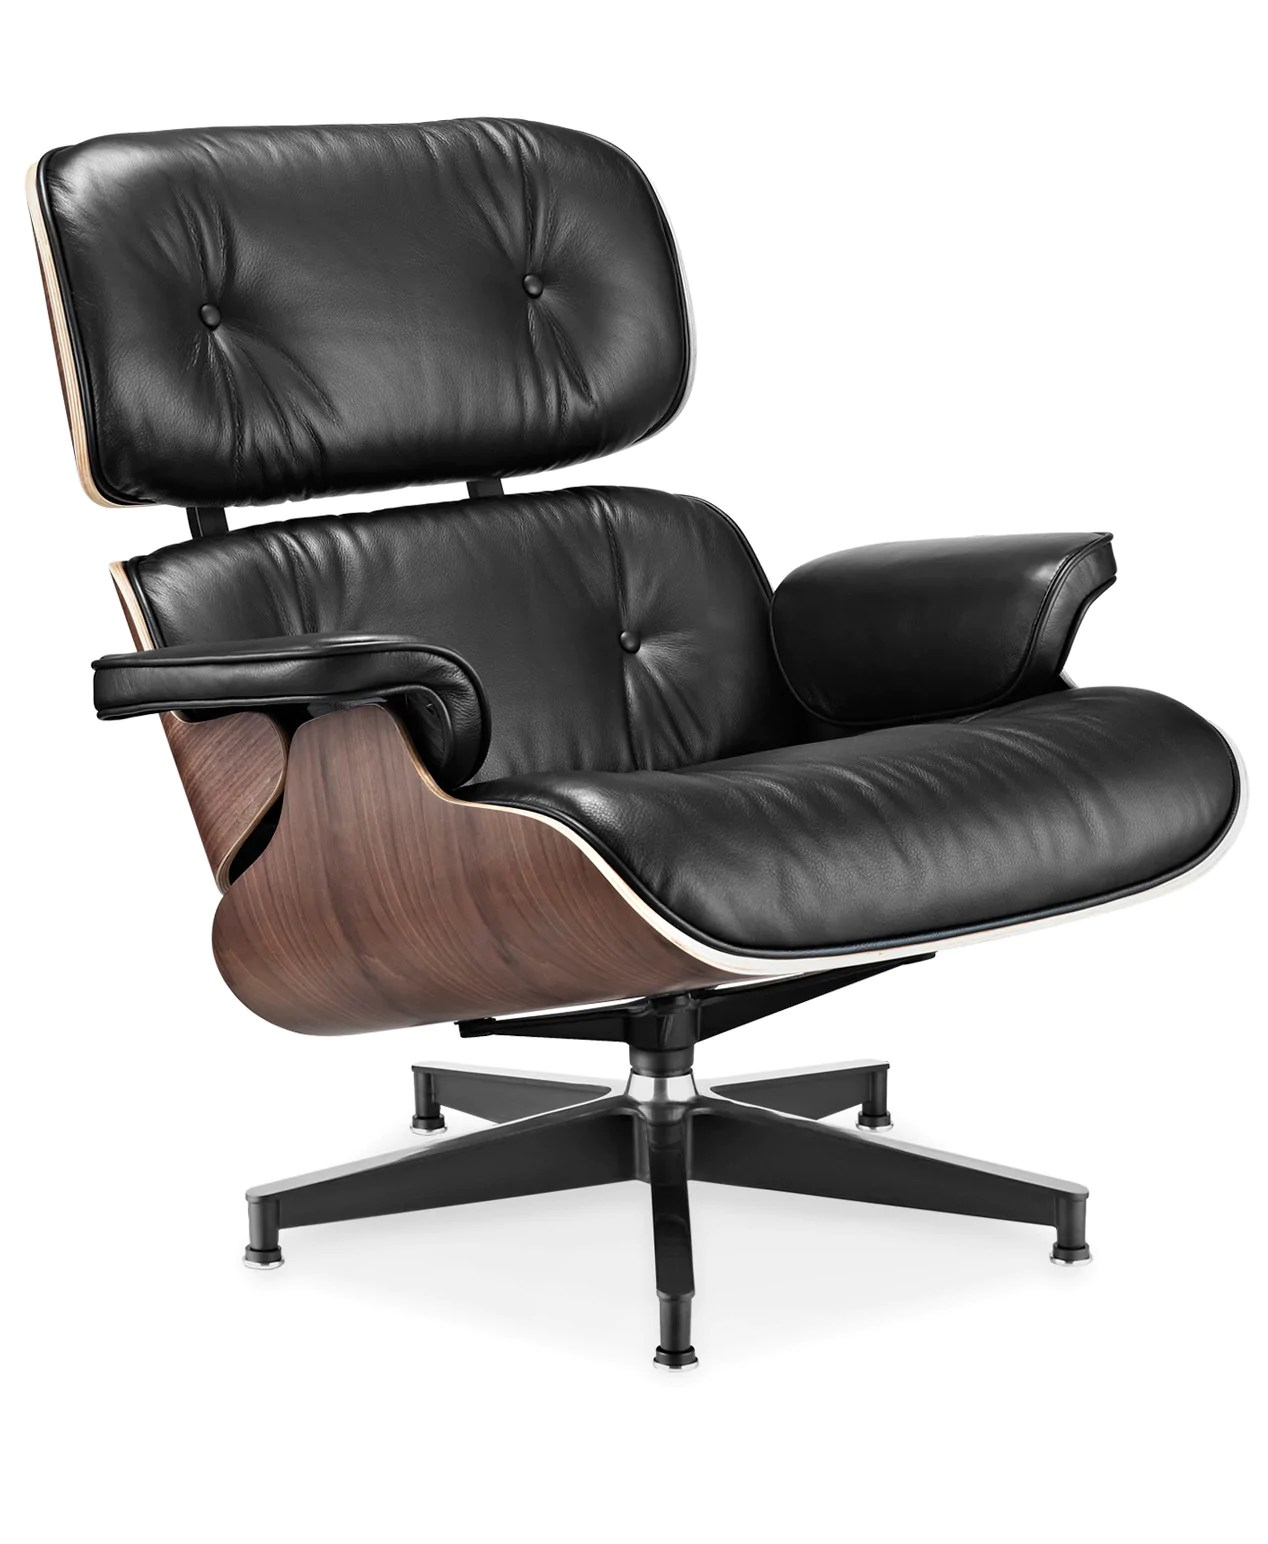 Charles Eames Lounge Chair 670 Lounge Chair Leather